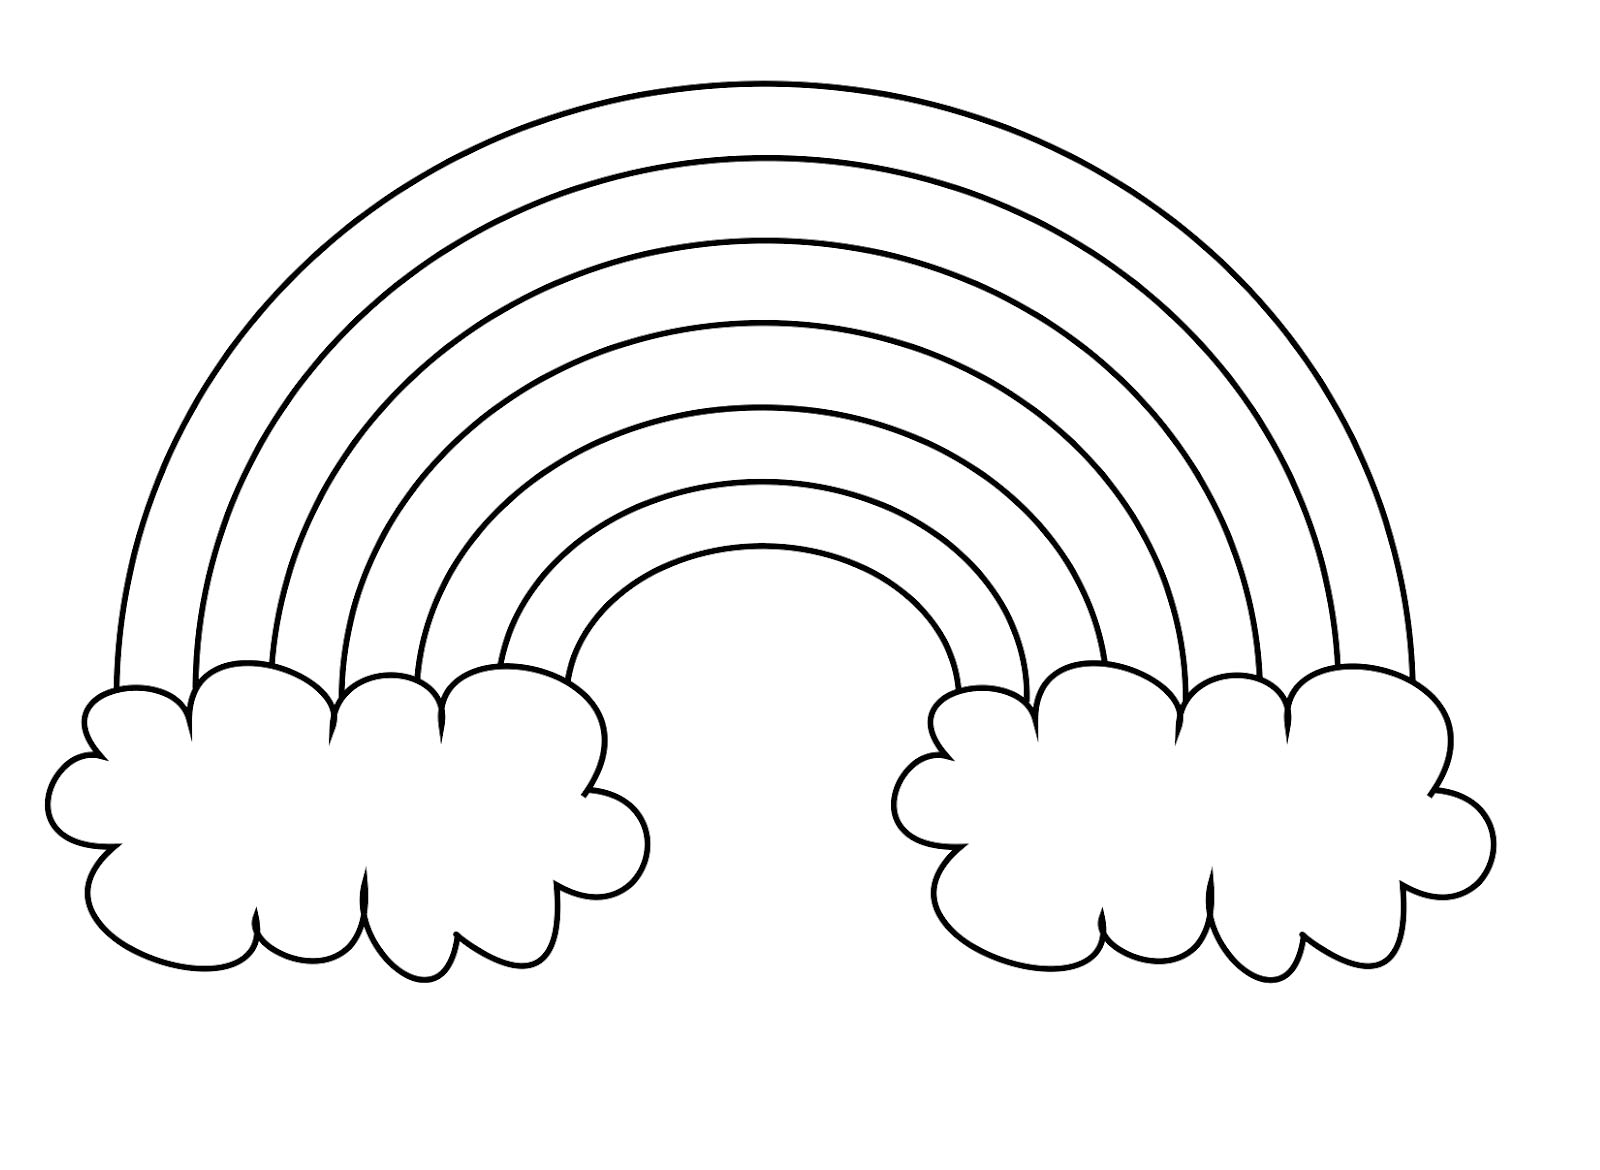 rainbow coloring pages for kid - photo#15